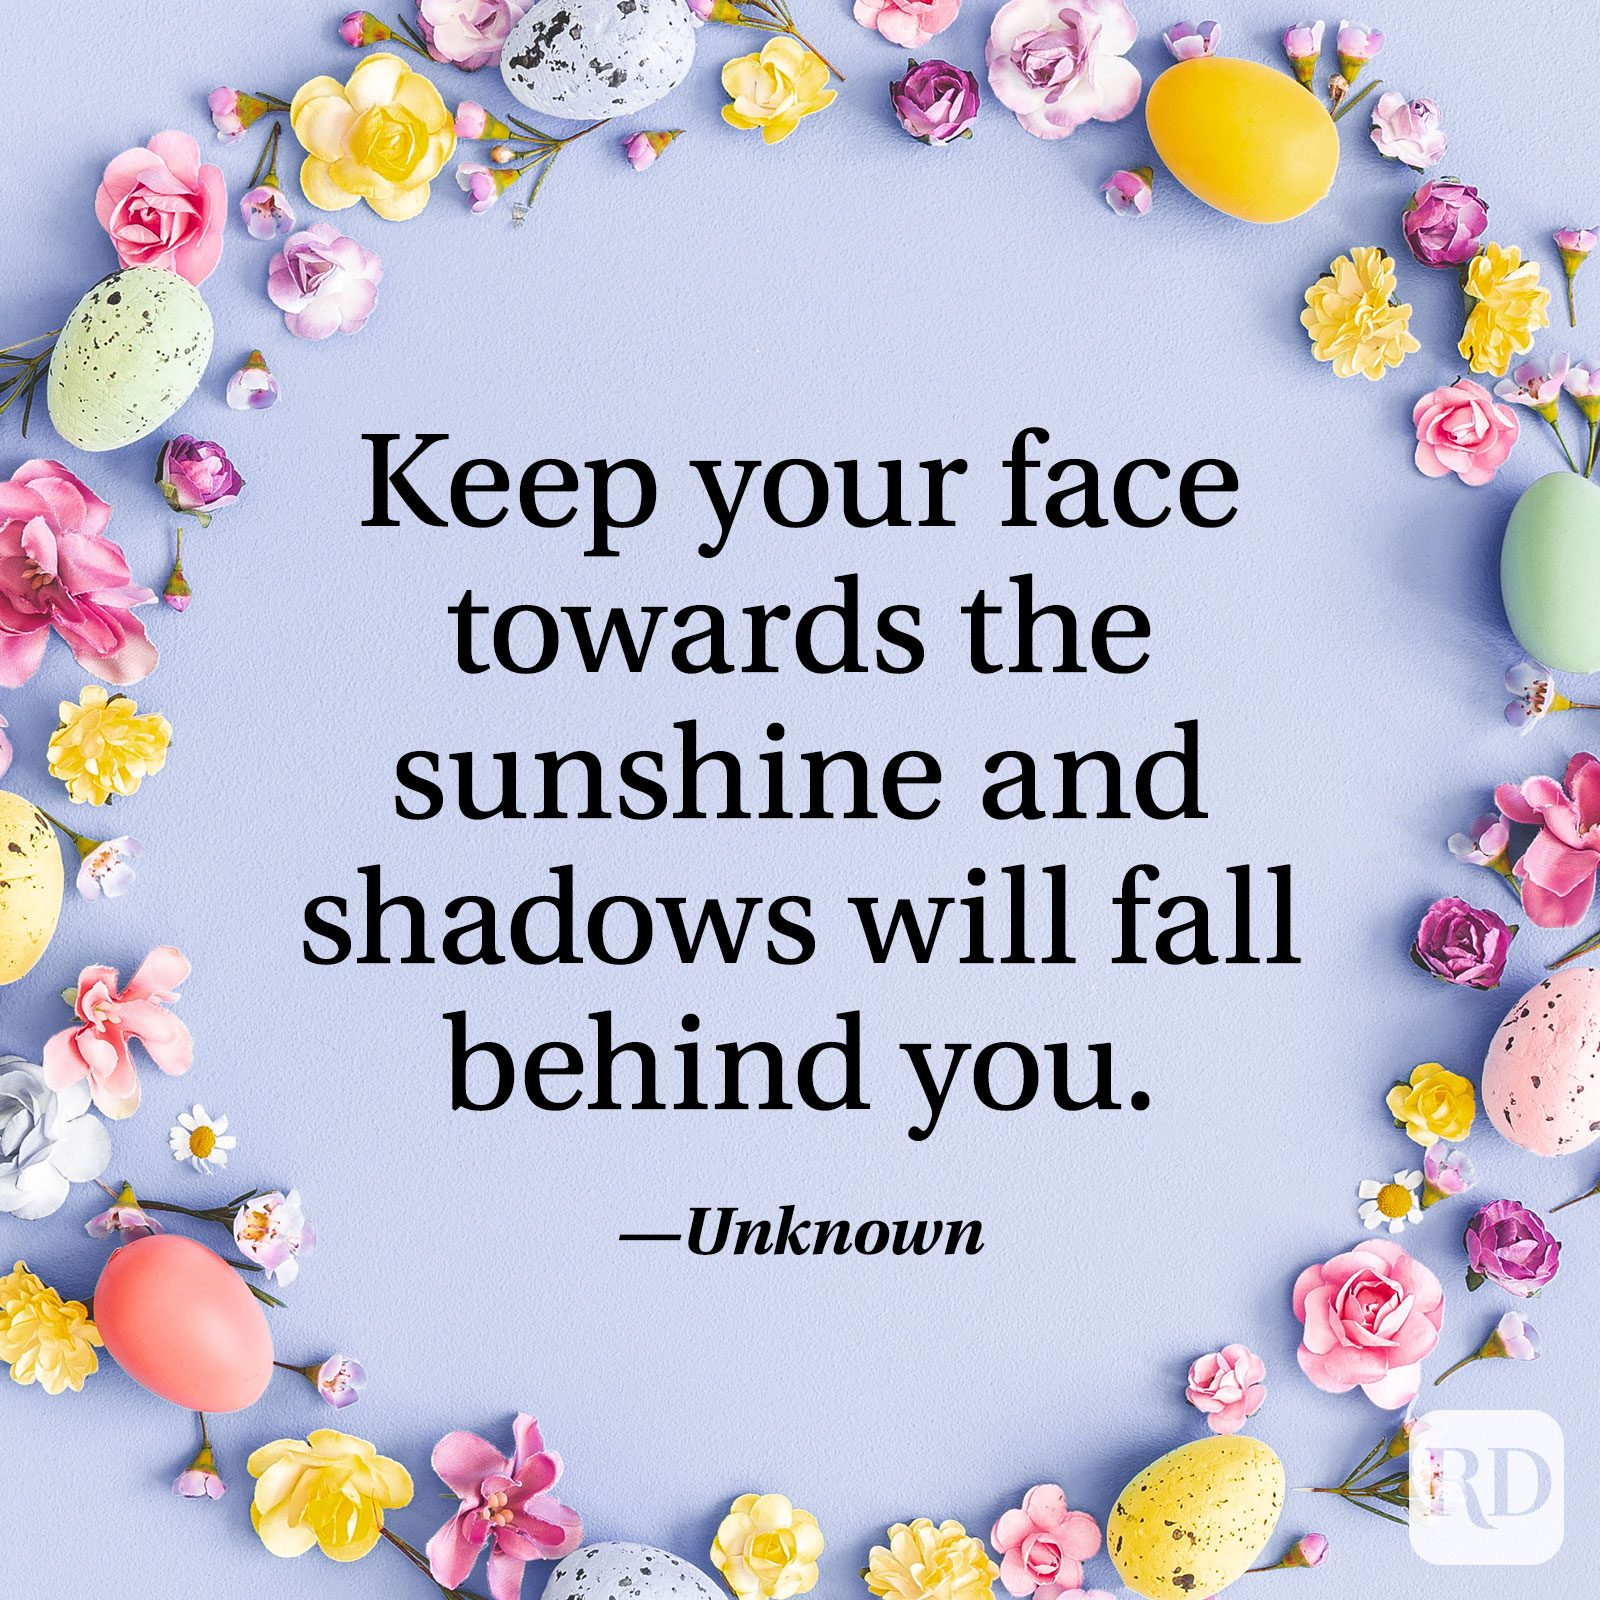 """Keep your face towards the sunshine and shadows will fall behind you."" — Unknown"